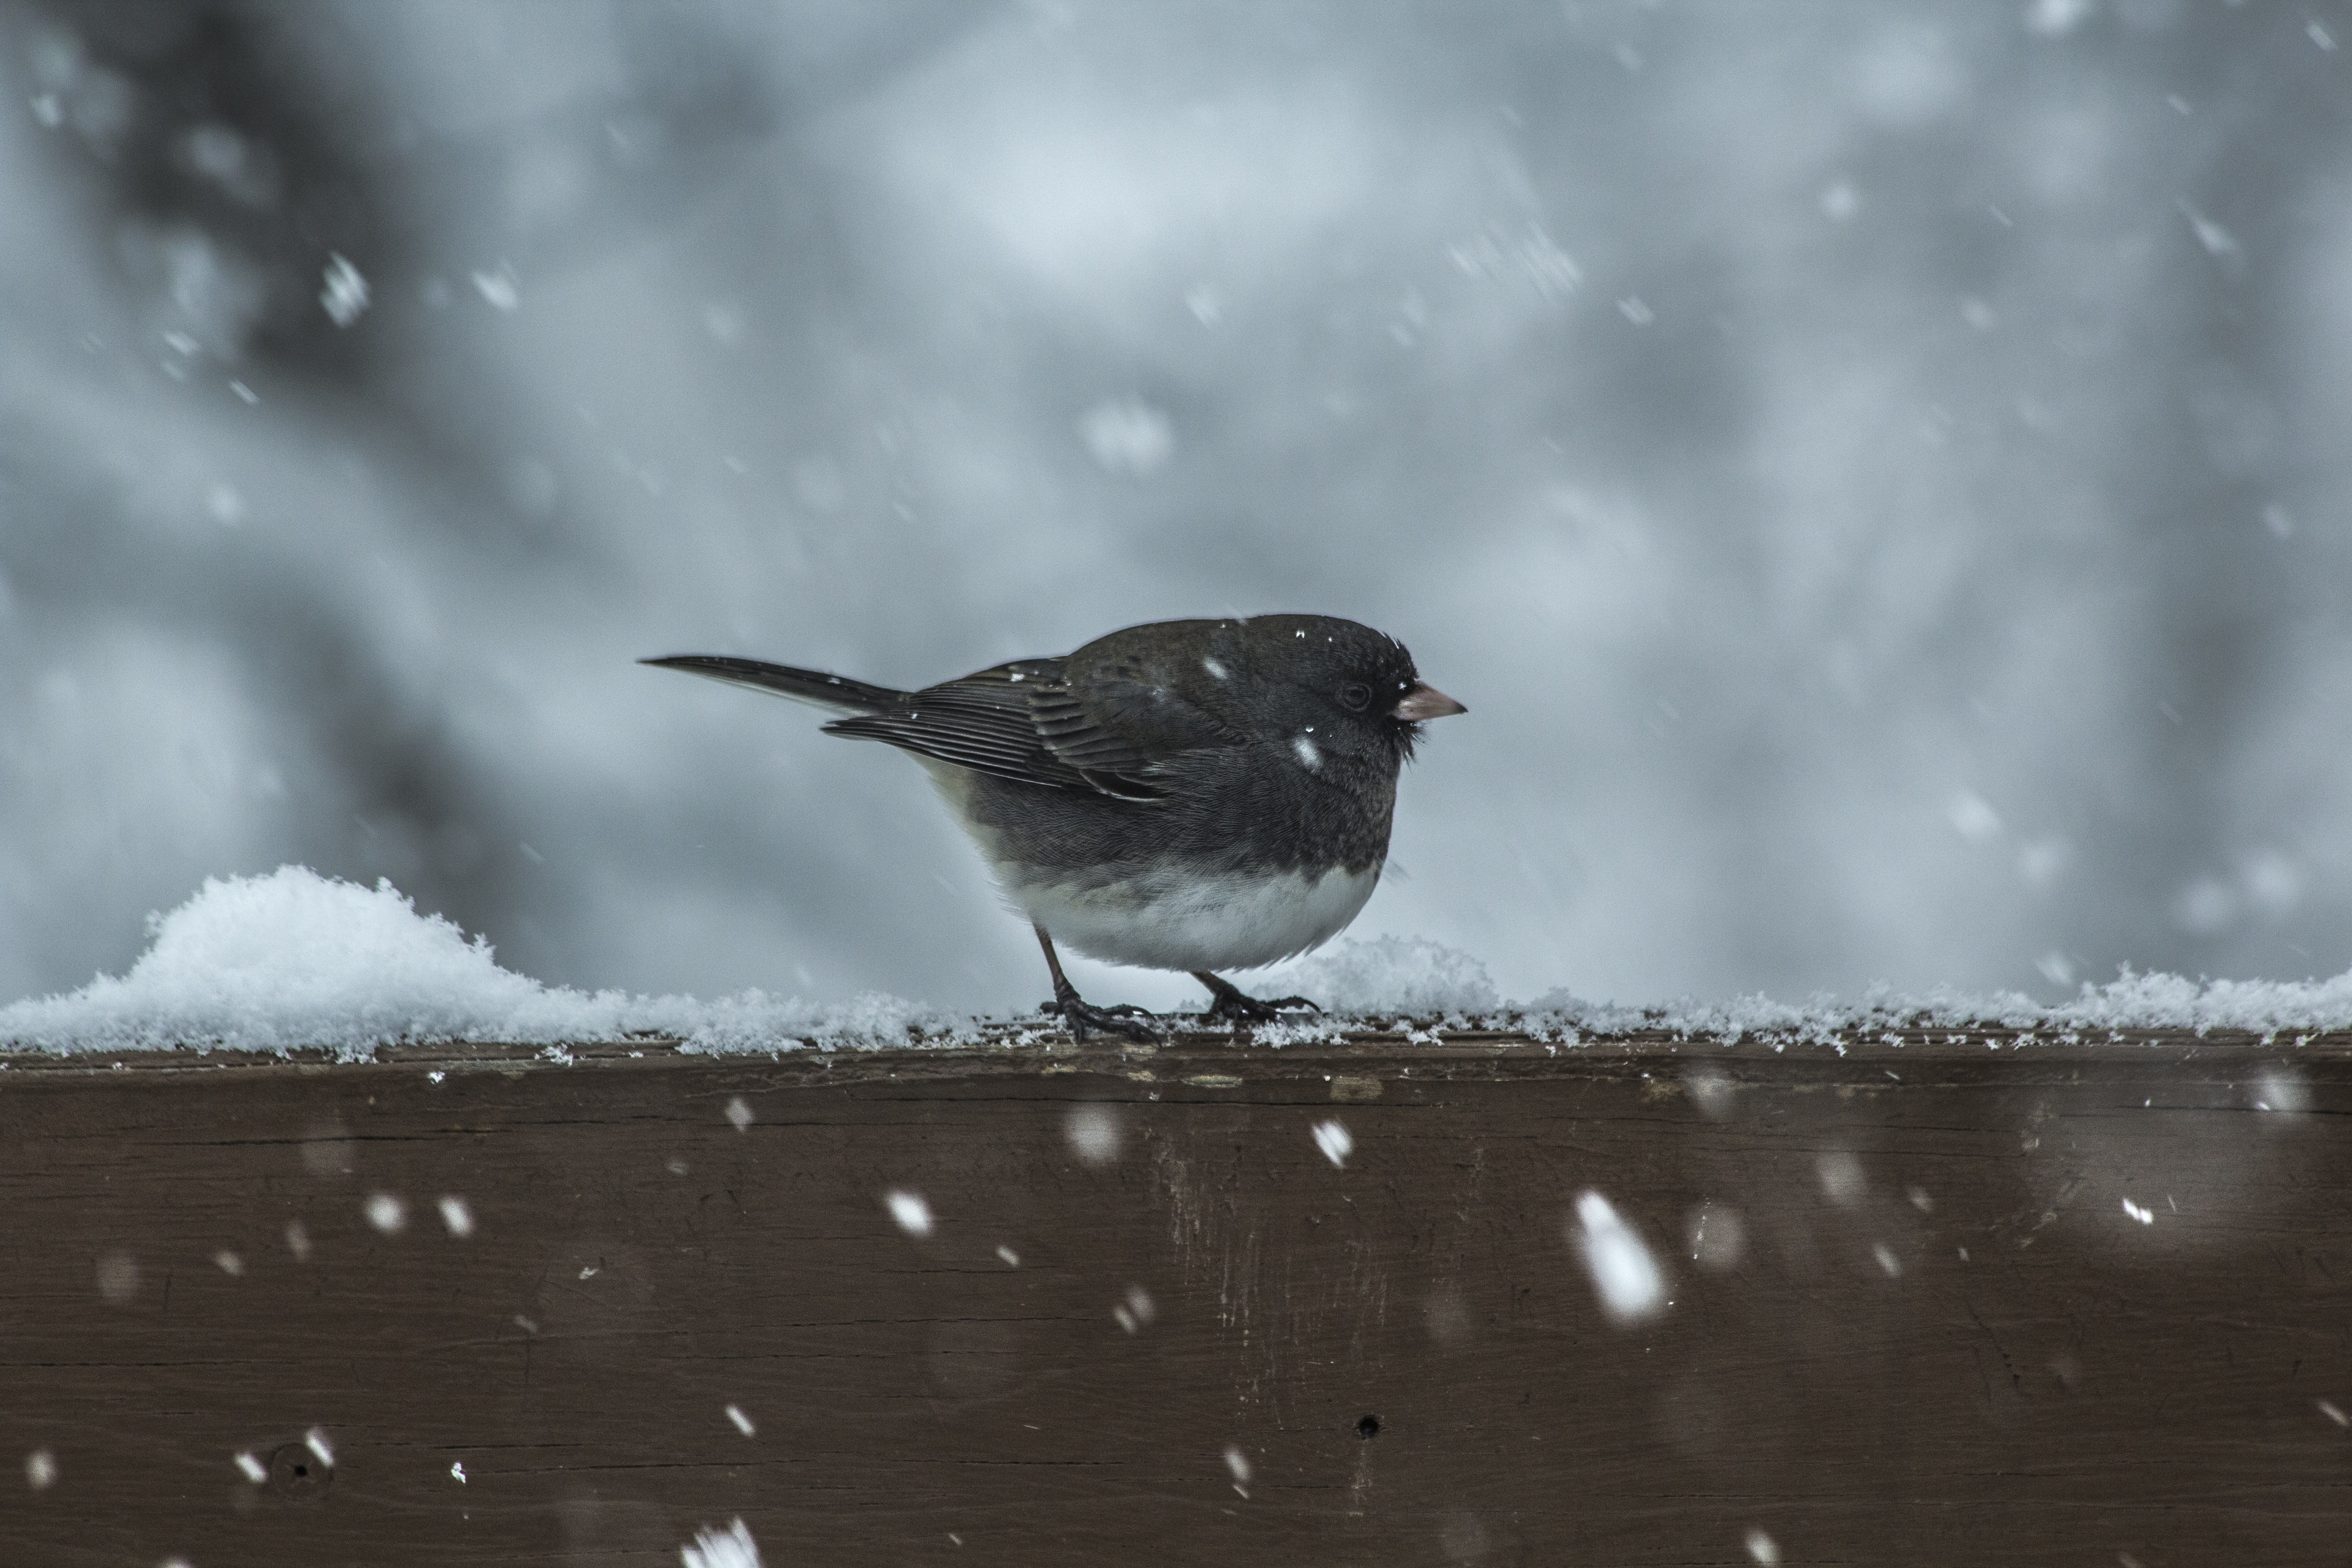 A small brown bird with a white belly in a snowing scene standing on a wooden railing covered with snowflakes